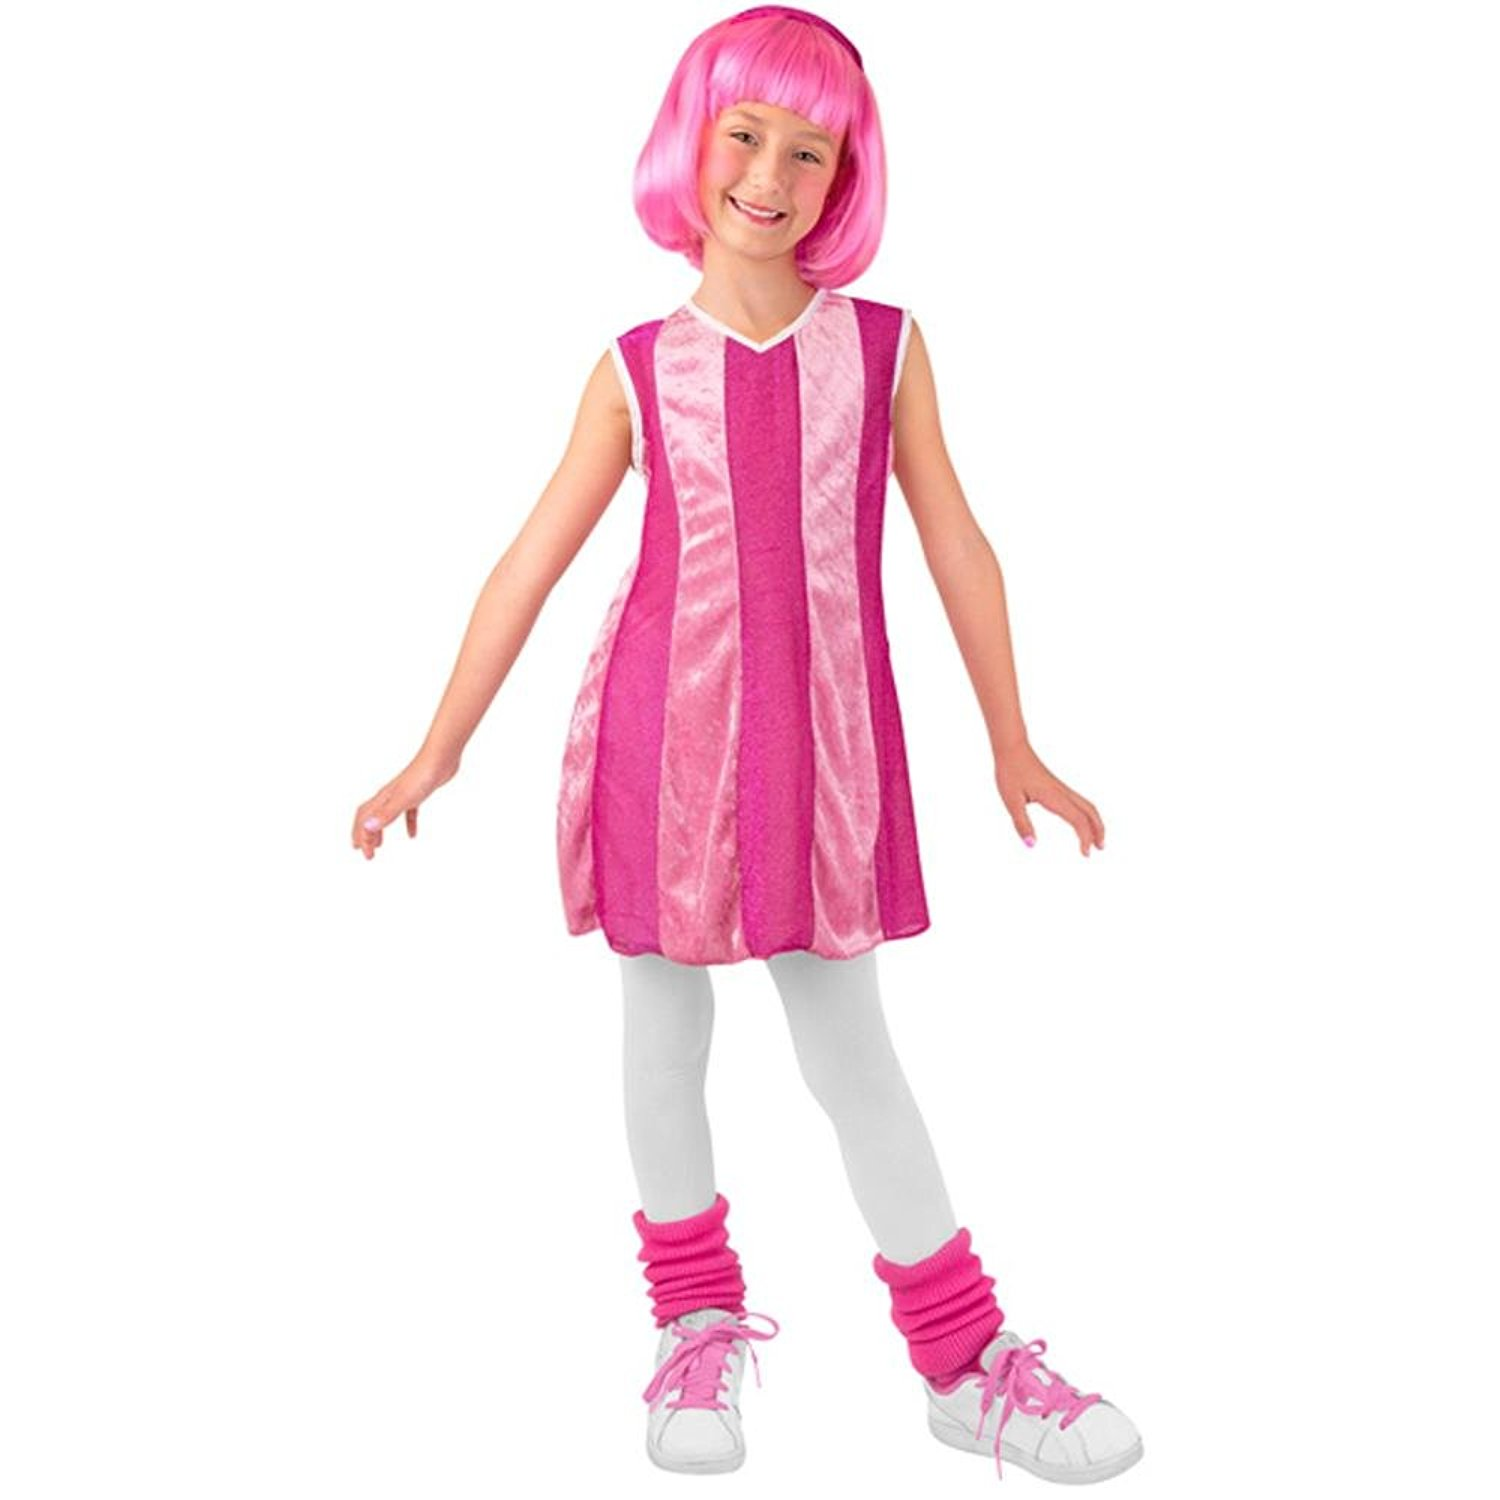 Stephanie panty lazy town are